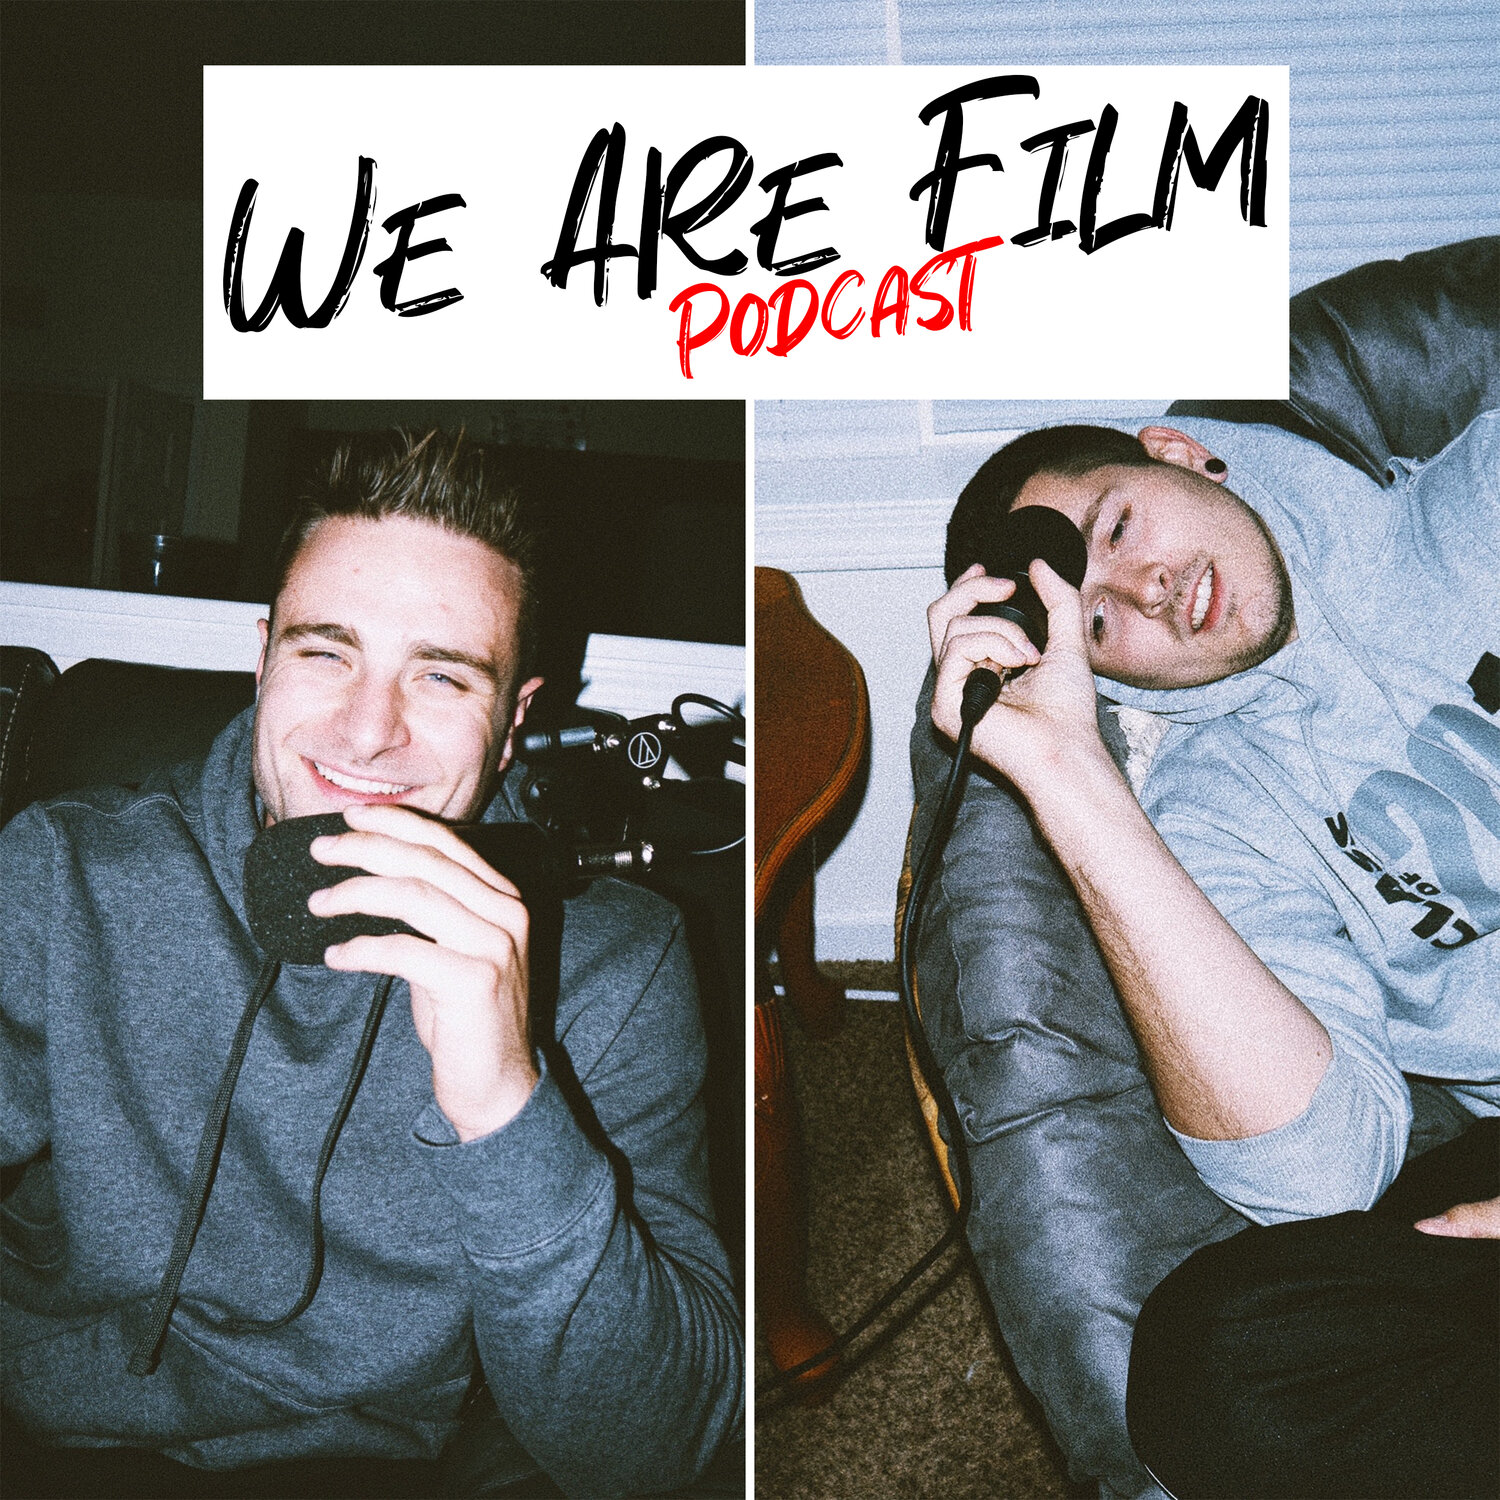 Video Editing Remotely | What's the Best Way? | We Are Film Episode #12